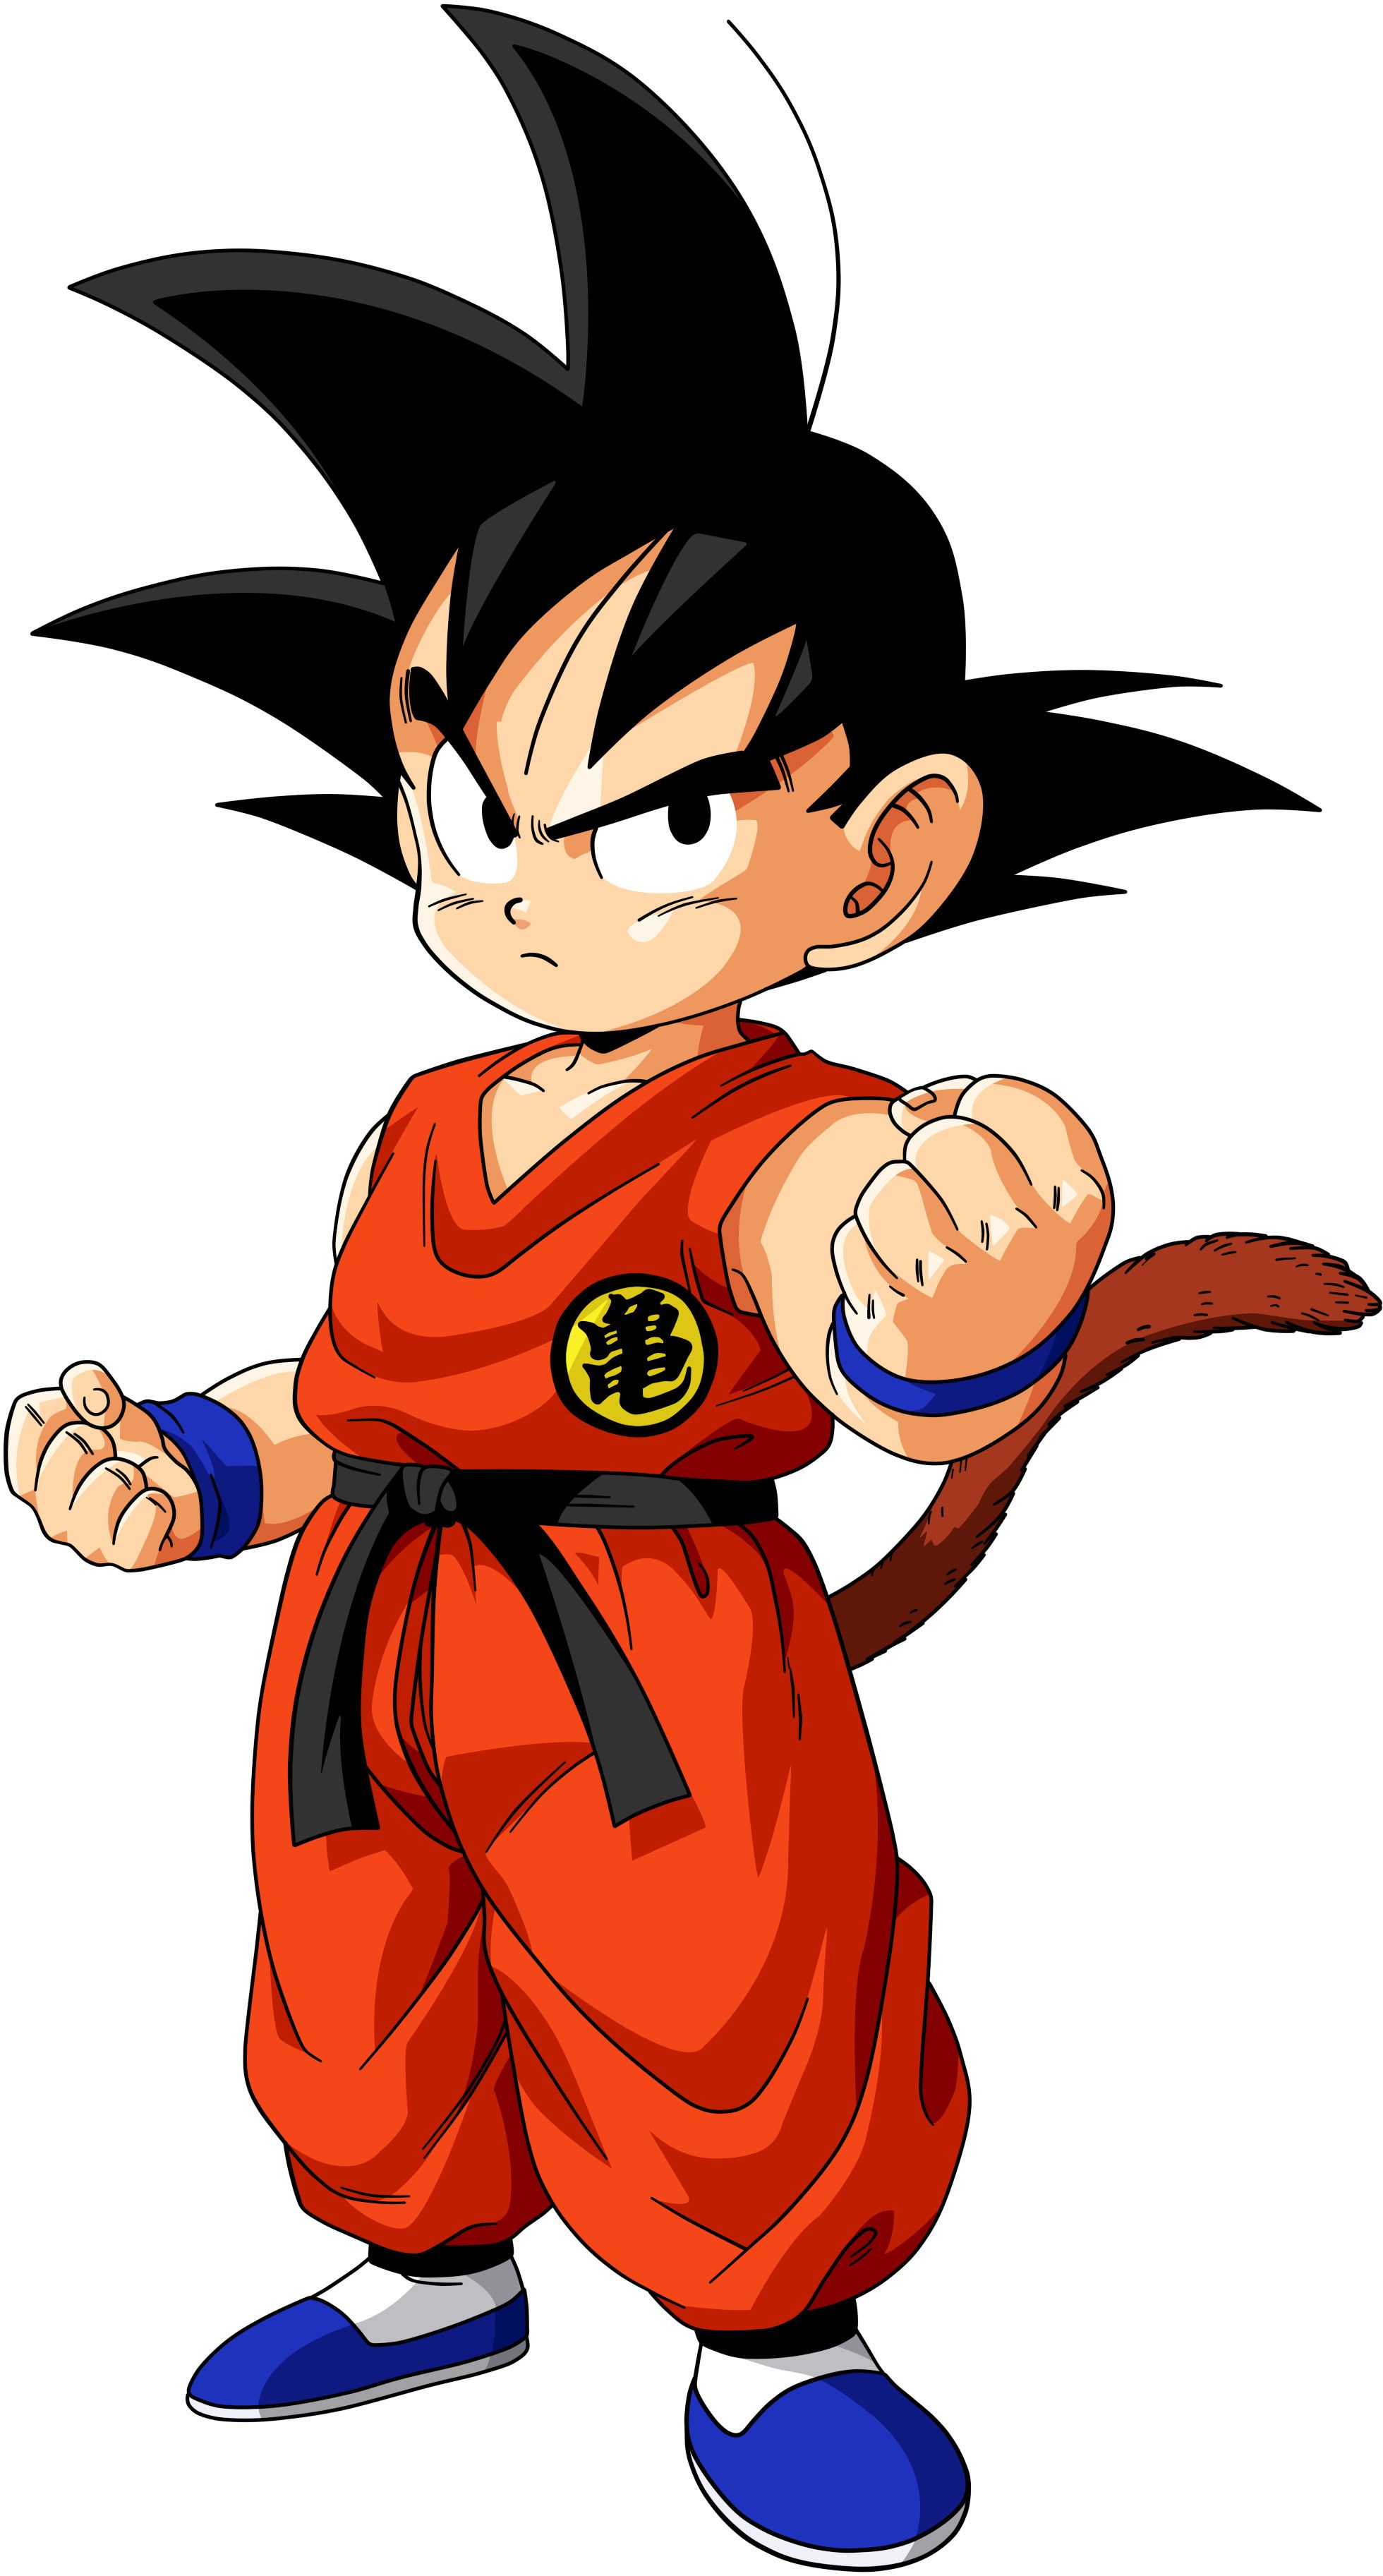 Kid Goku Wallpapers Top Free Kid Goku Backgrounds Wallpaperaccess